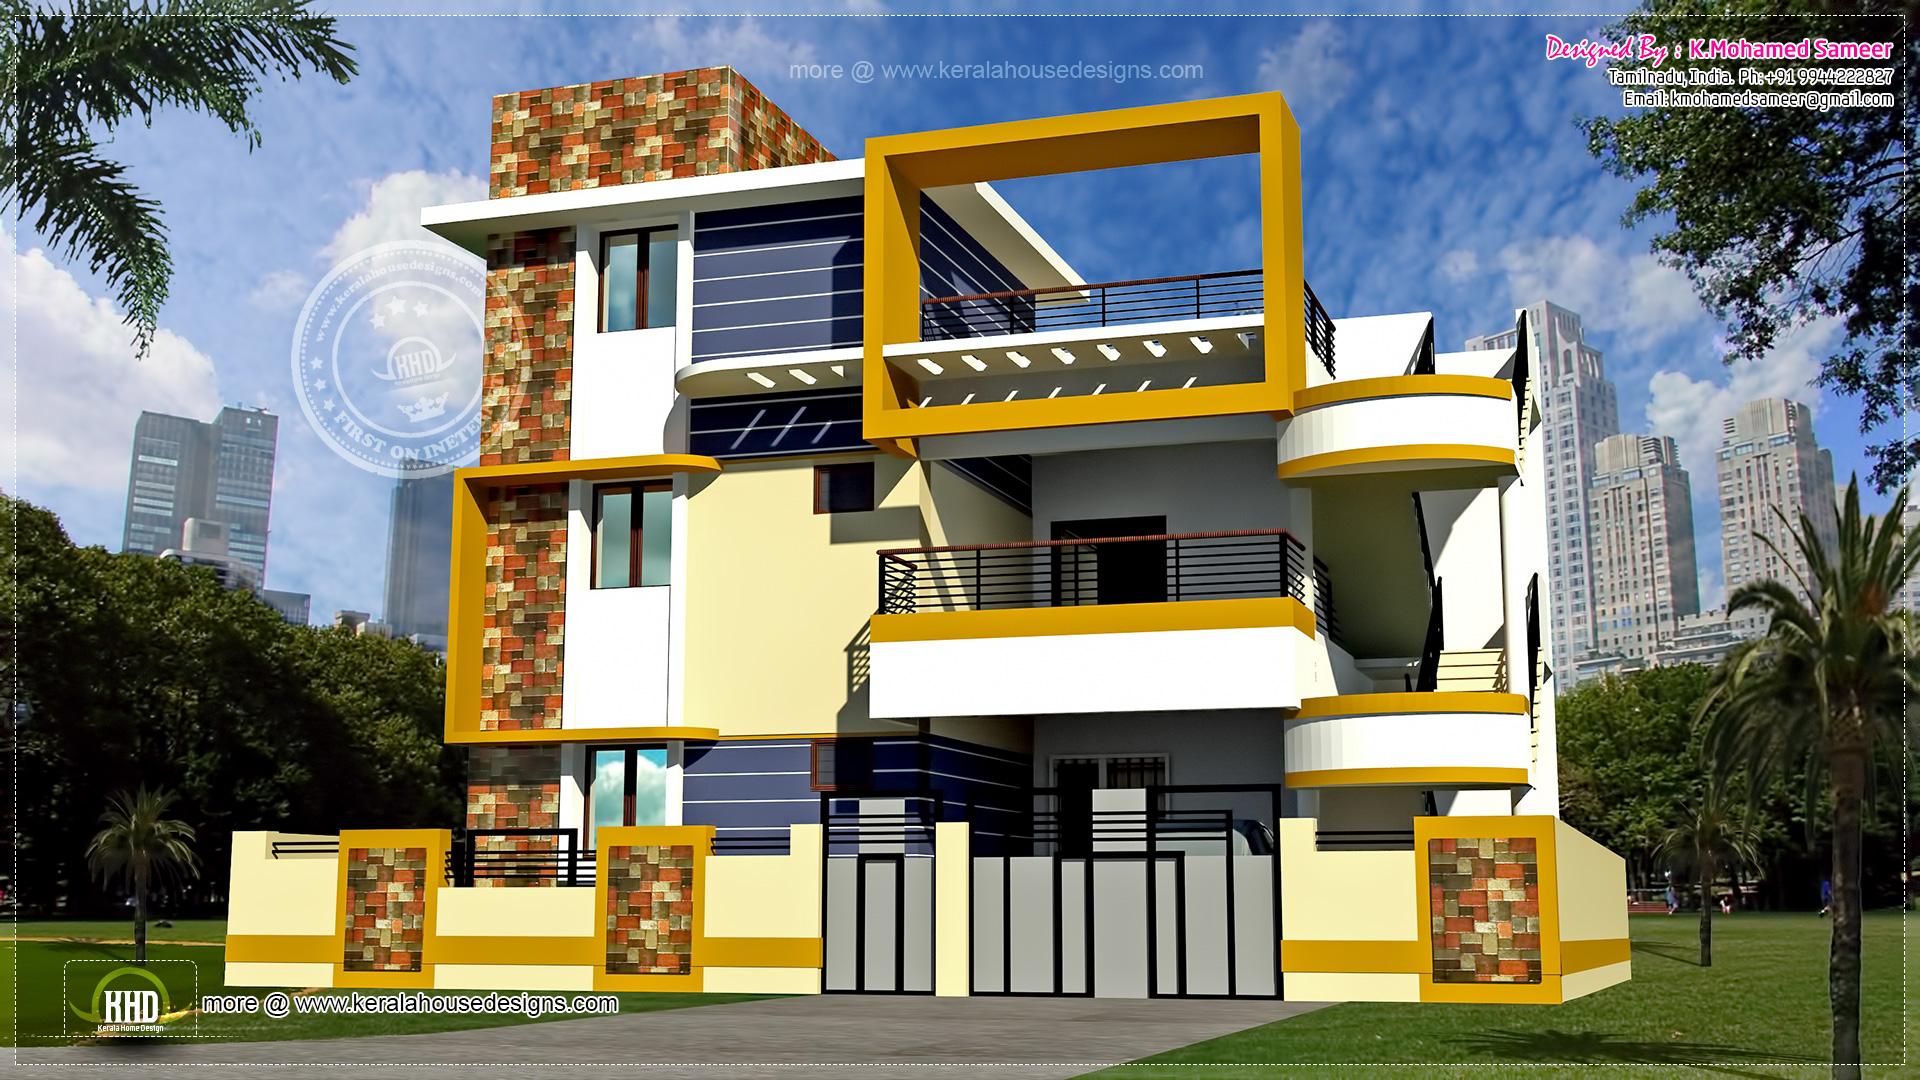 Modern 3 floor tamilnadu house design kerala home design for House design in small area